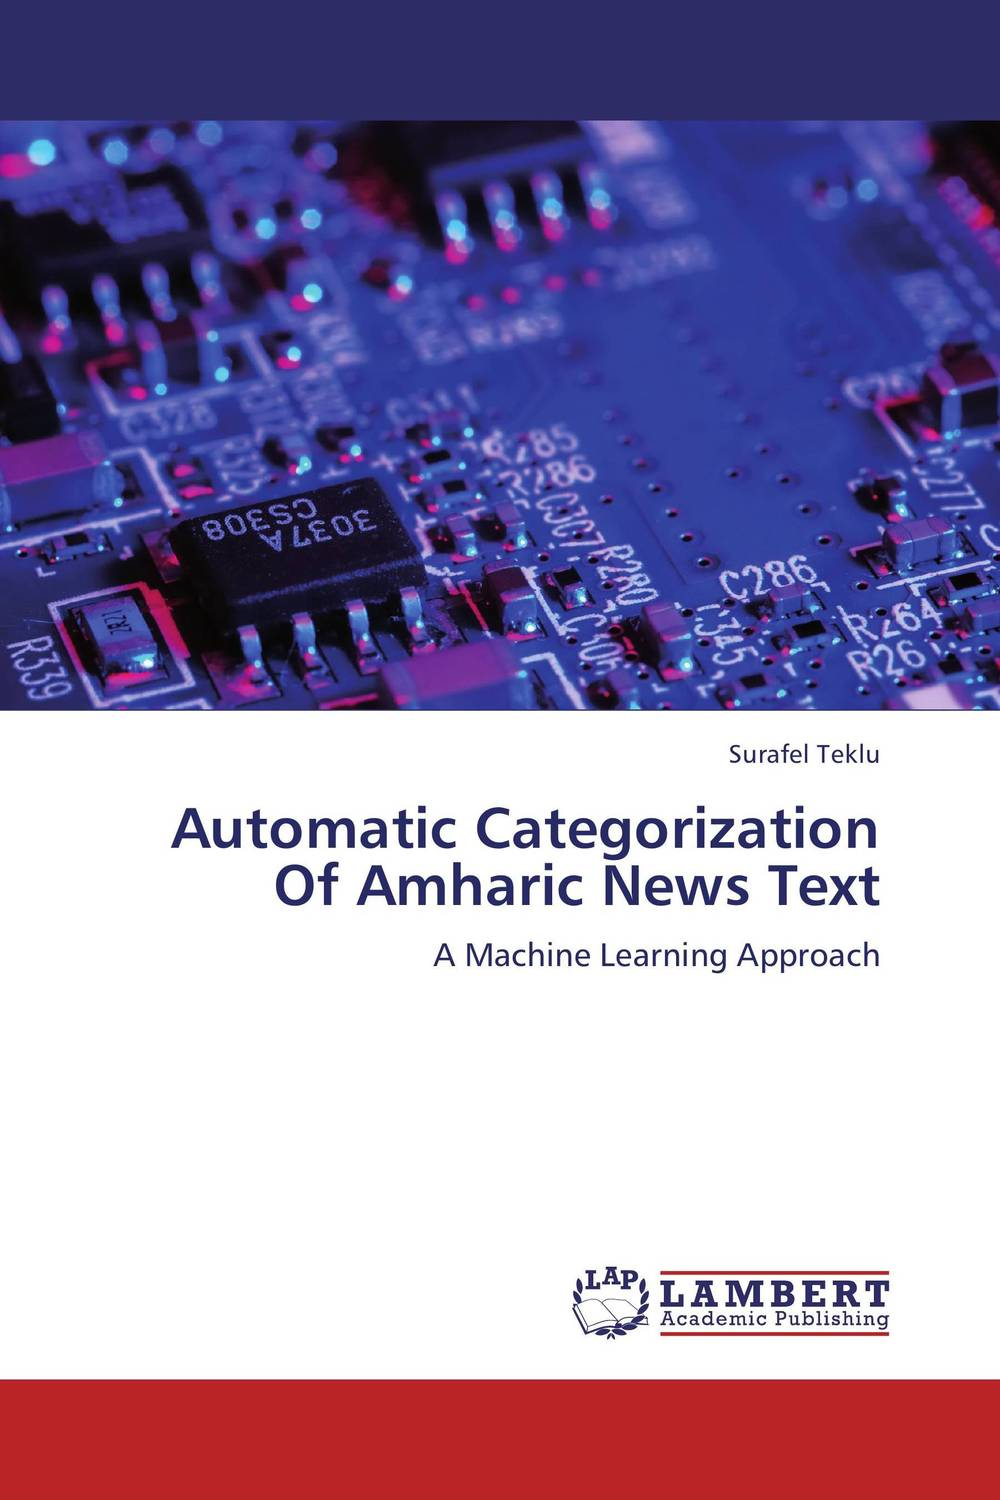 Automatic Categorization Of Amharic News Text temporal processing of news